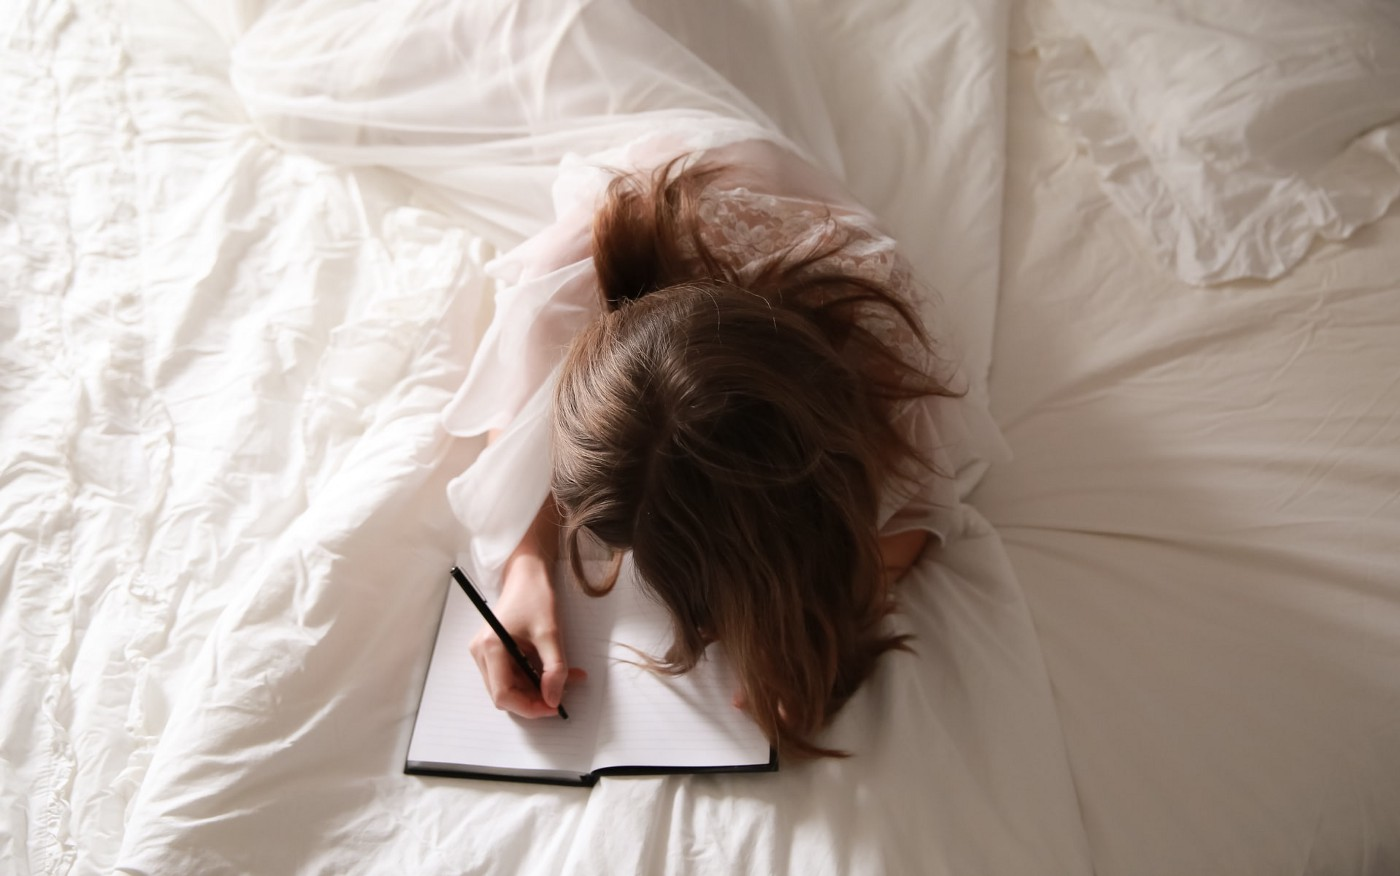 A woman lying in bed, writing in a notebook.